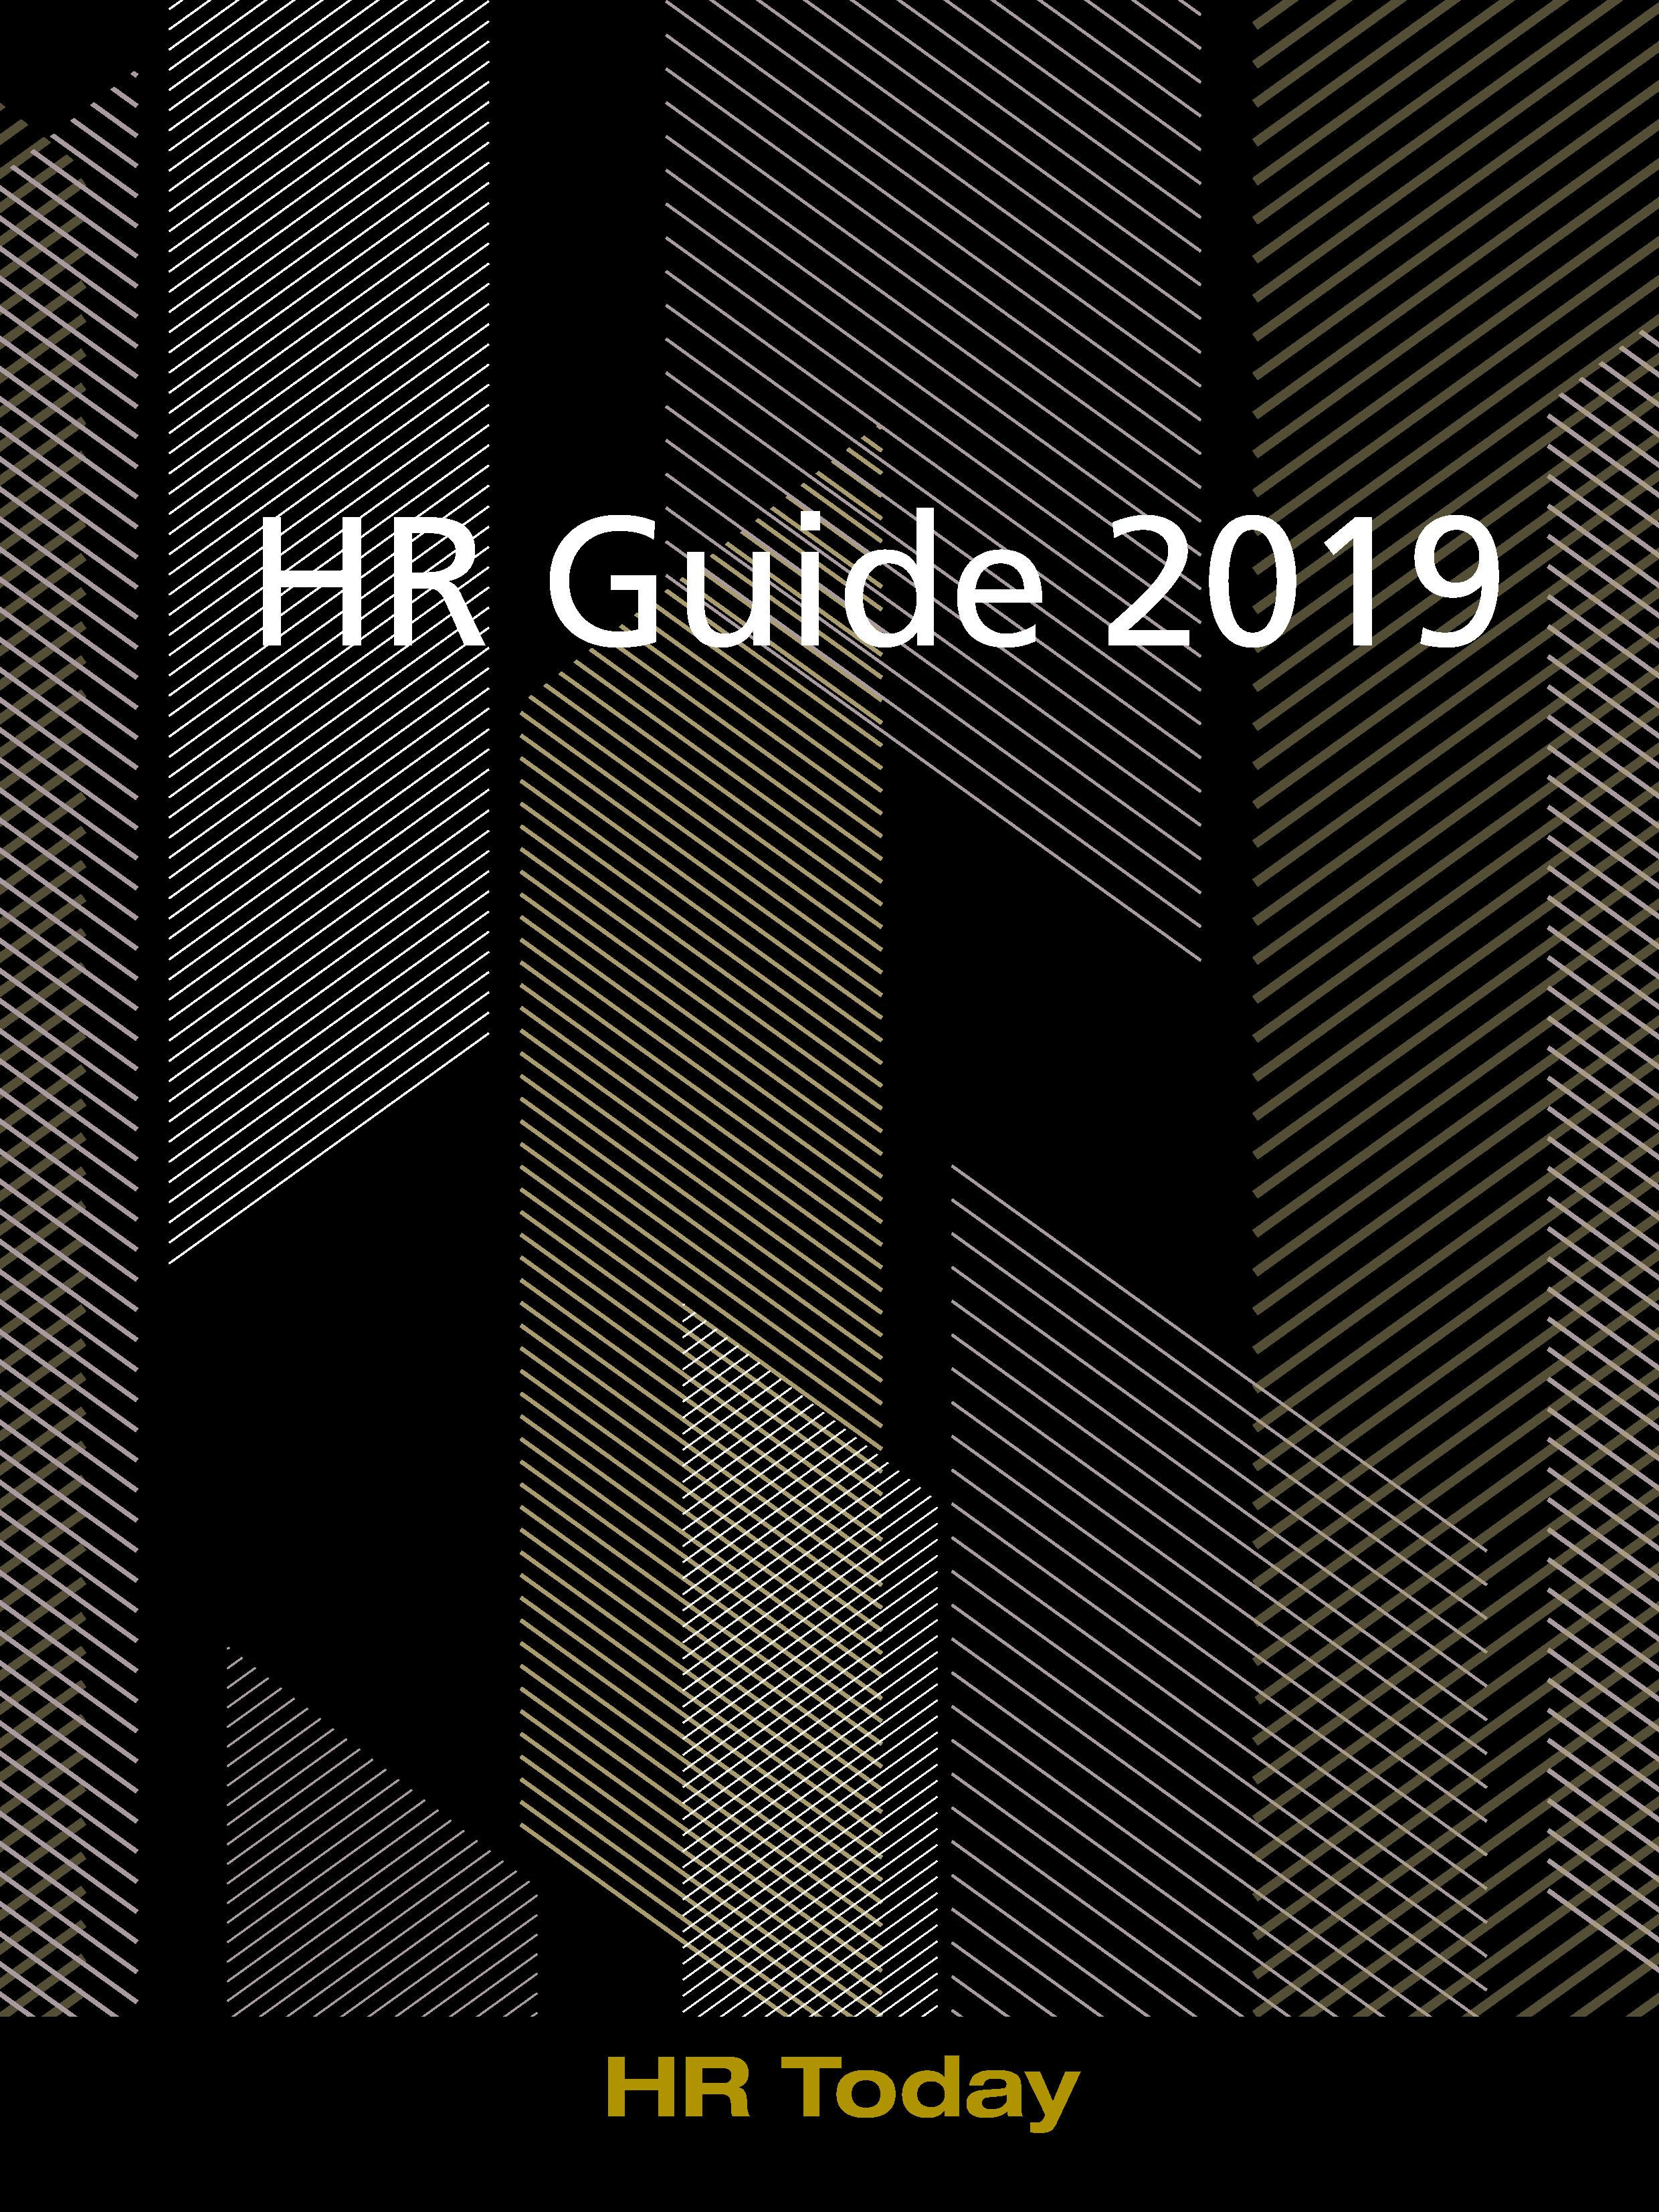 HR Guide 2019